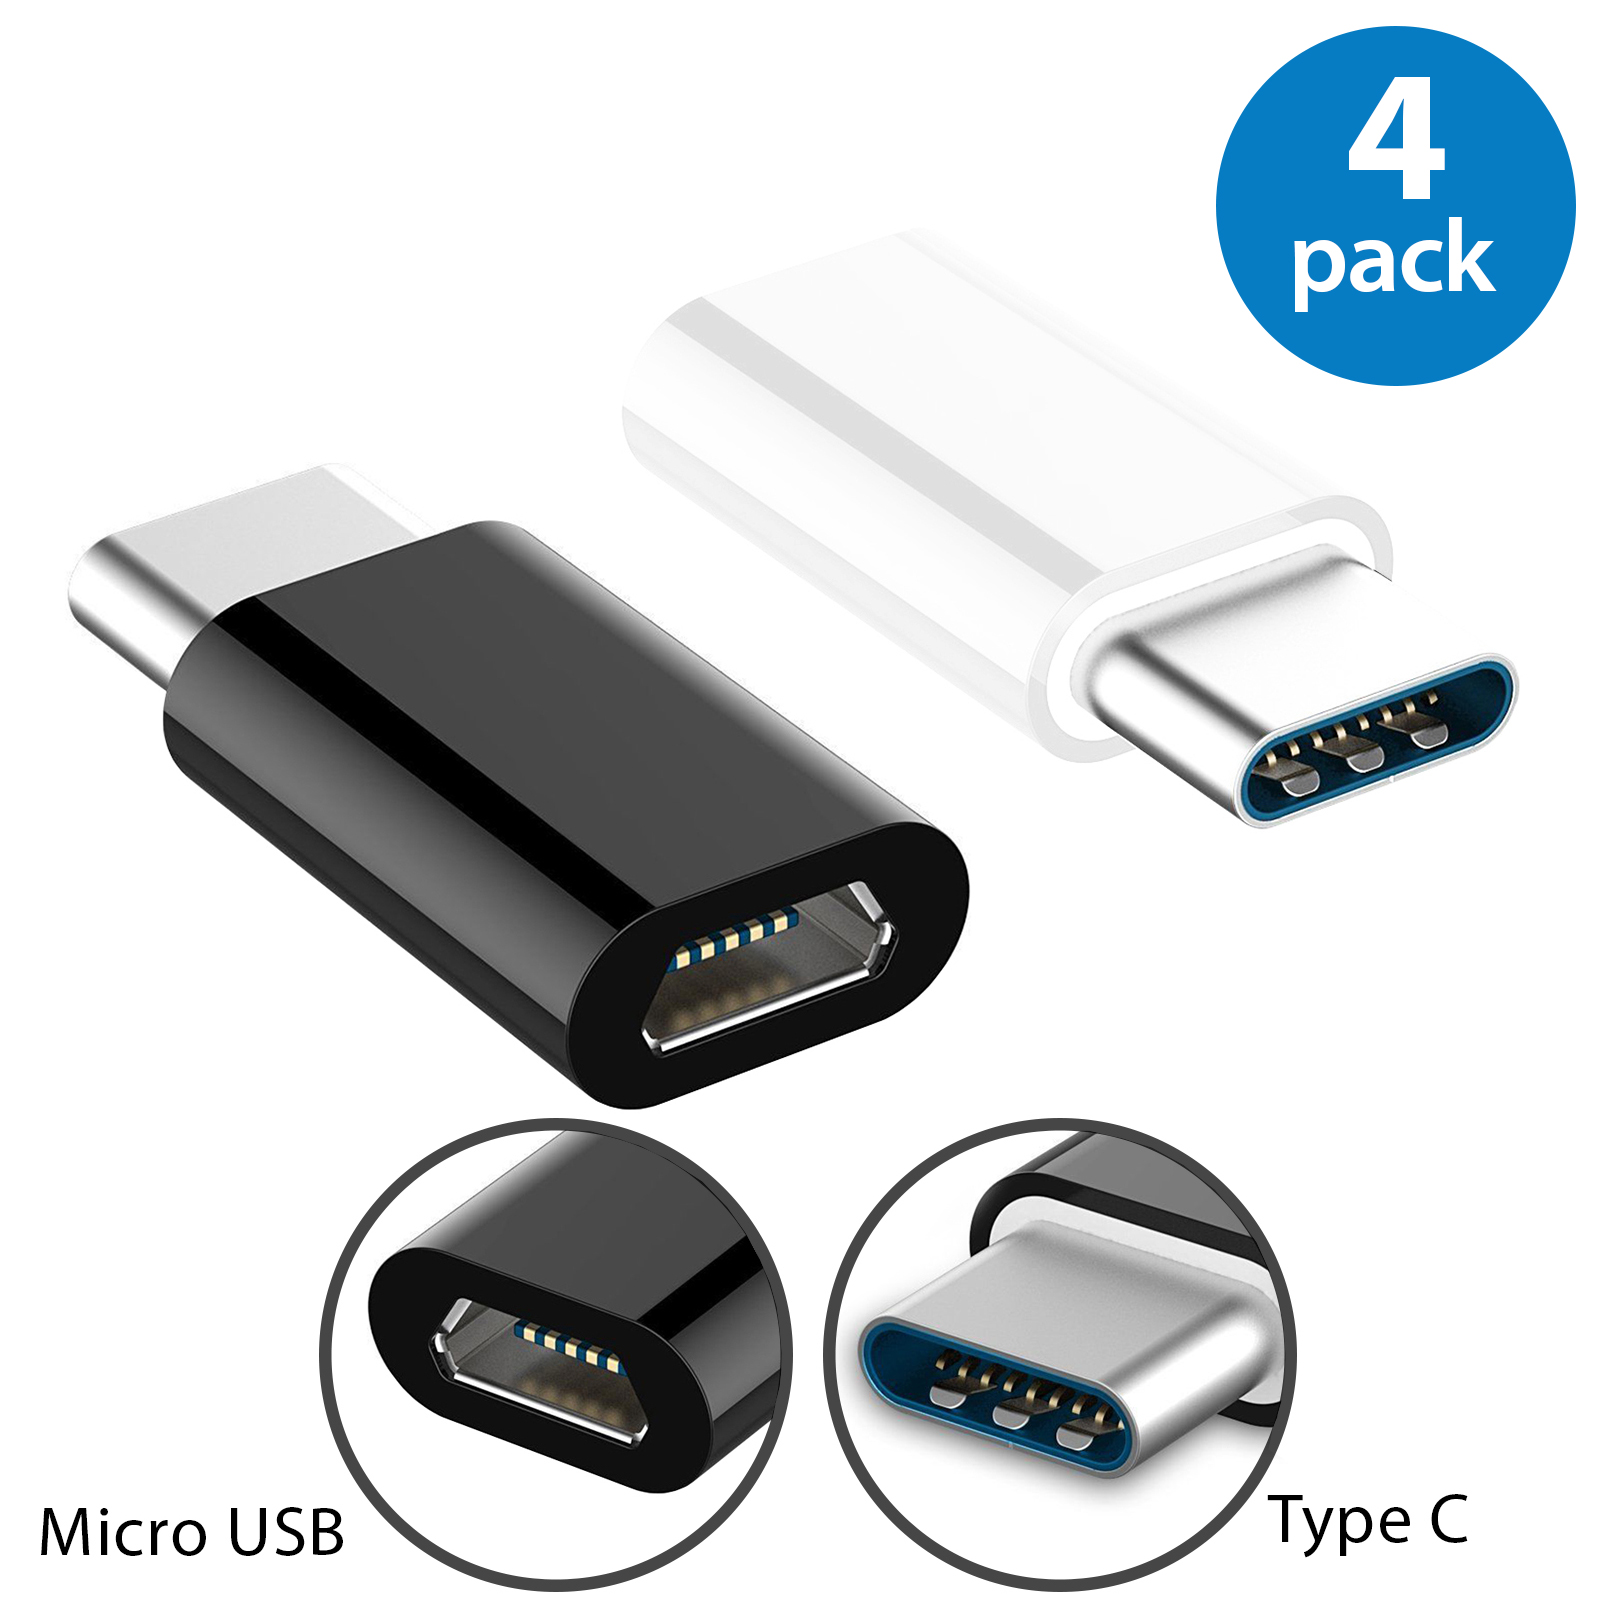 4x Afflux USB-C Adapter Connector USB Type C Male to Micro USB Female Adapter Charge Sync Converter For Samsung Galaxy S8+ Note 8 Nexus 5X 6P LG G5 G6 V20 HTC 10 Google Pixel XL OnePlus 3 5 White